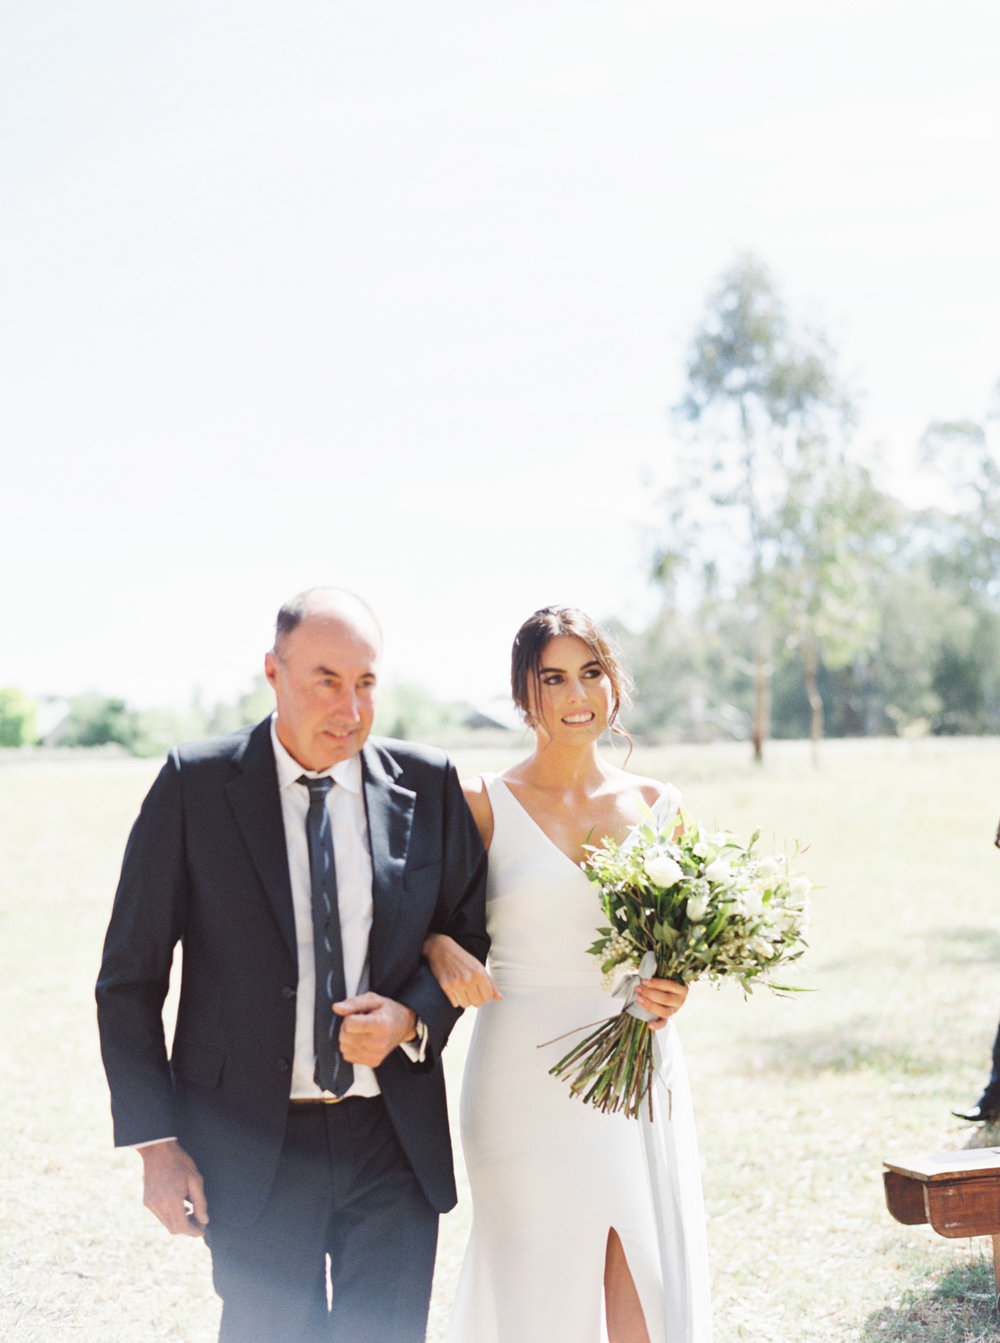 00024- Olive Tree Mediterranean Wedding in Mudgee NSW Australia Fine Art Film Wedding Lifestyle Photographer Sheri McMahon_.jpg